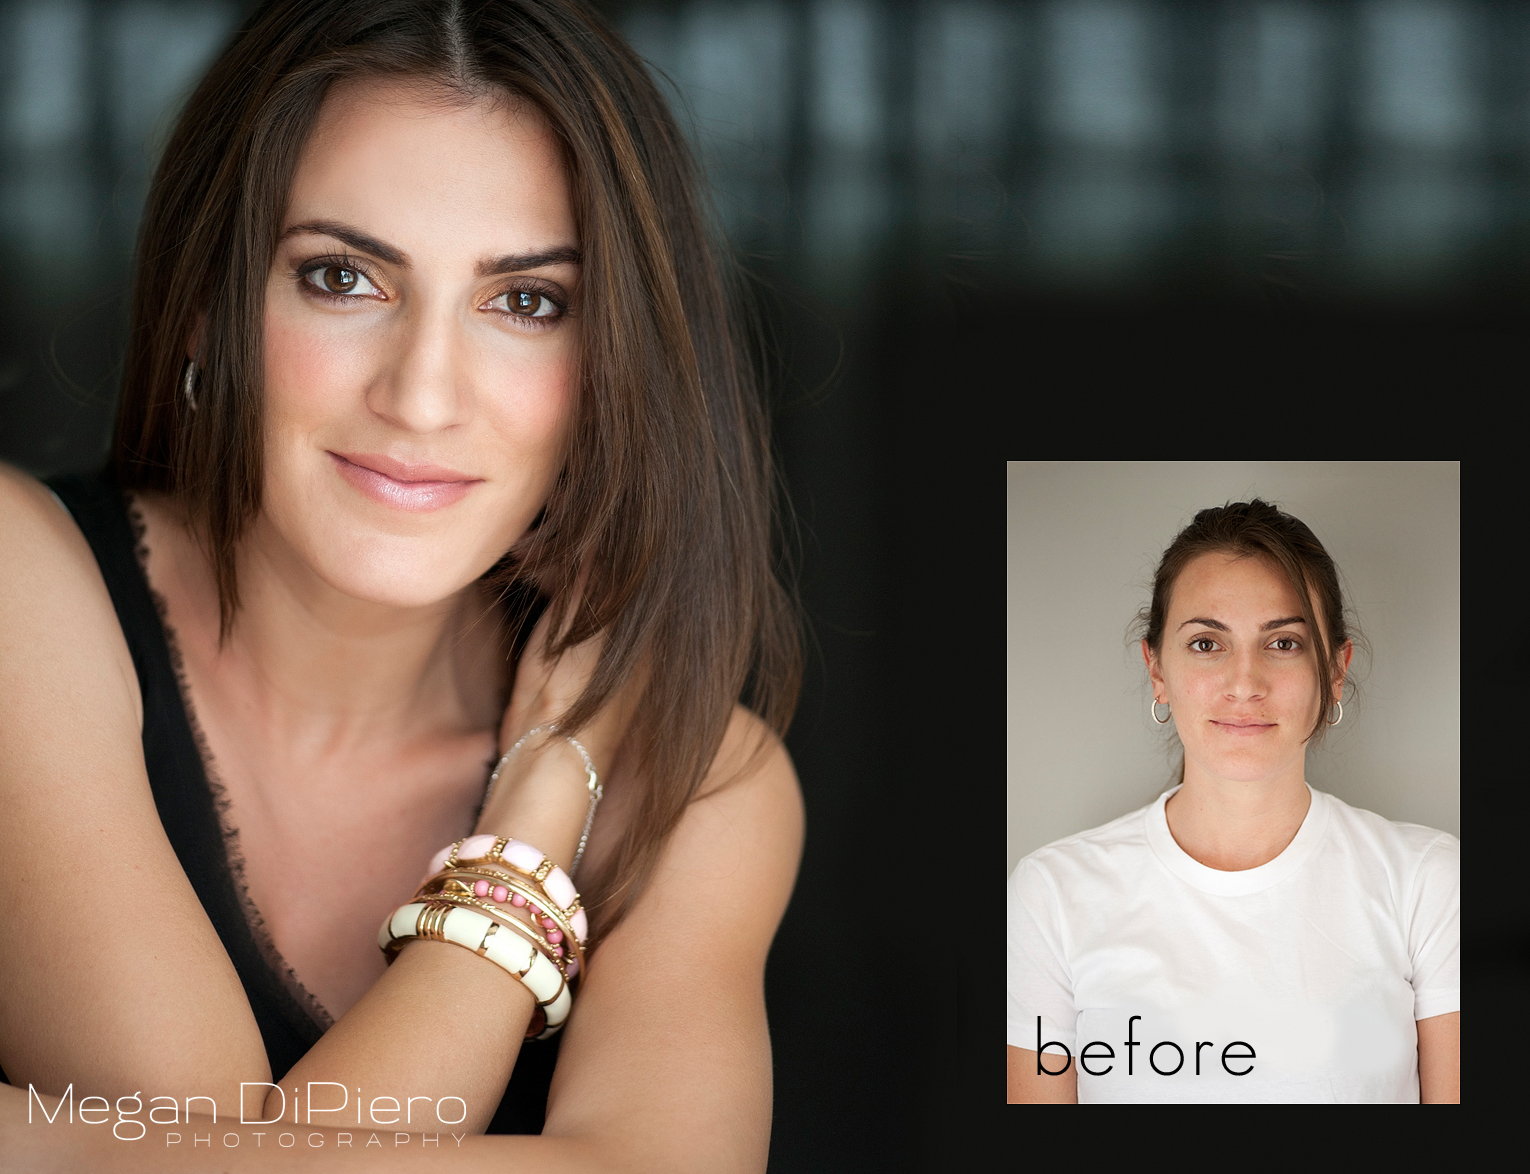 Megan DiPiero Photography {7 Steps to Your Best Headshots Ever}